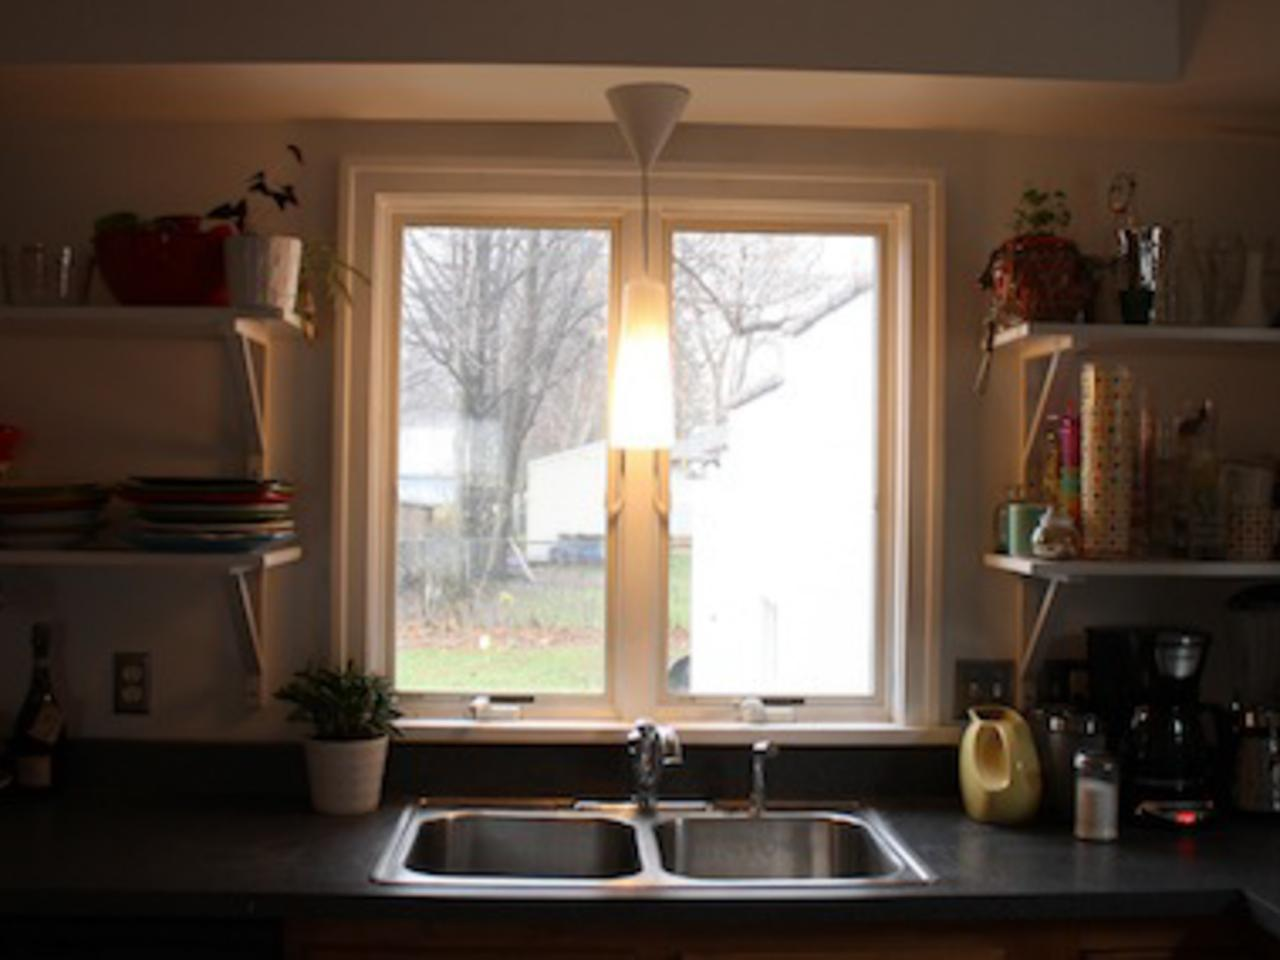 Kitchen Sink Light How To Install A Kitchen Pendant Light In 6 Easy Steps Diy